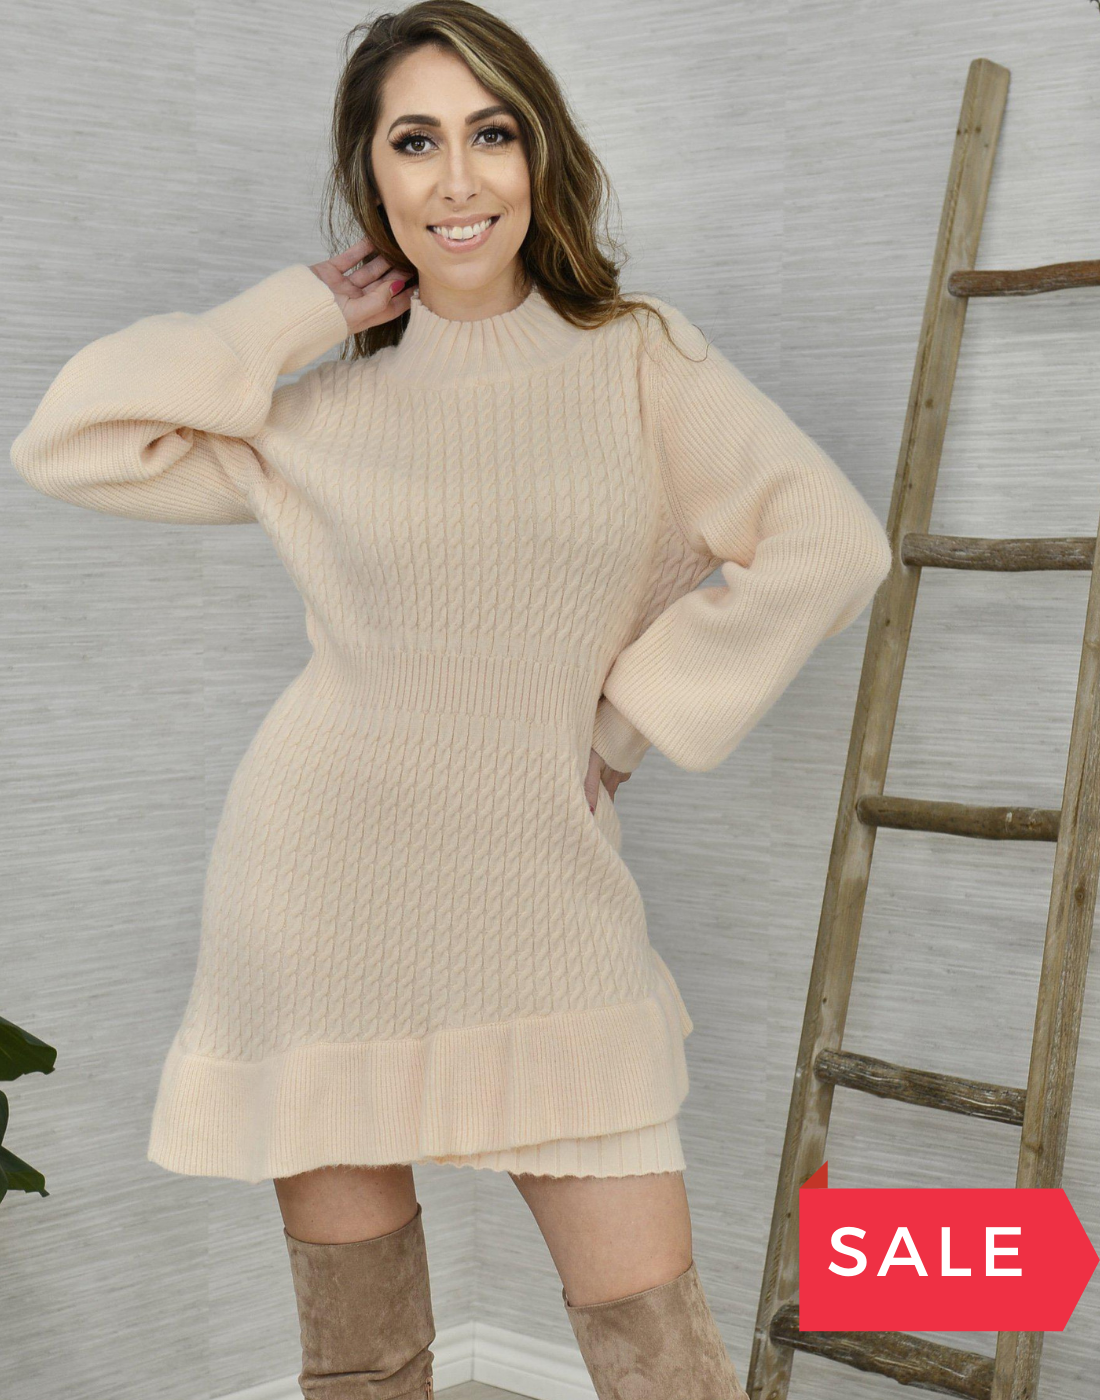 SALE: WINTER DREAMS SWEATER DRESS - ORIG $79